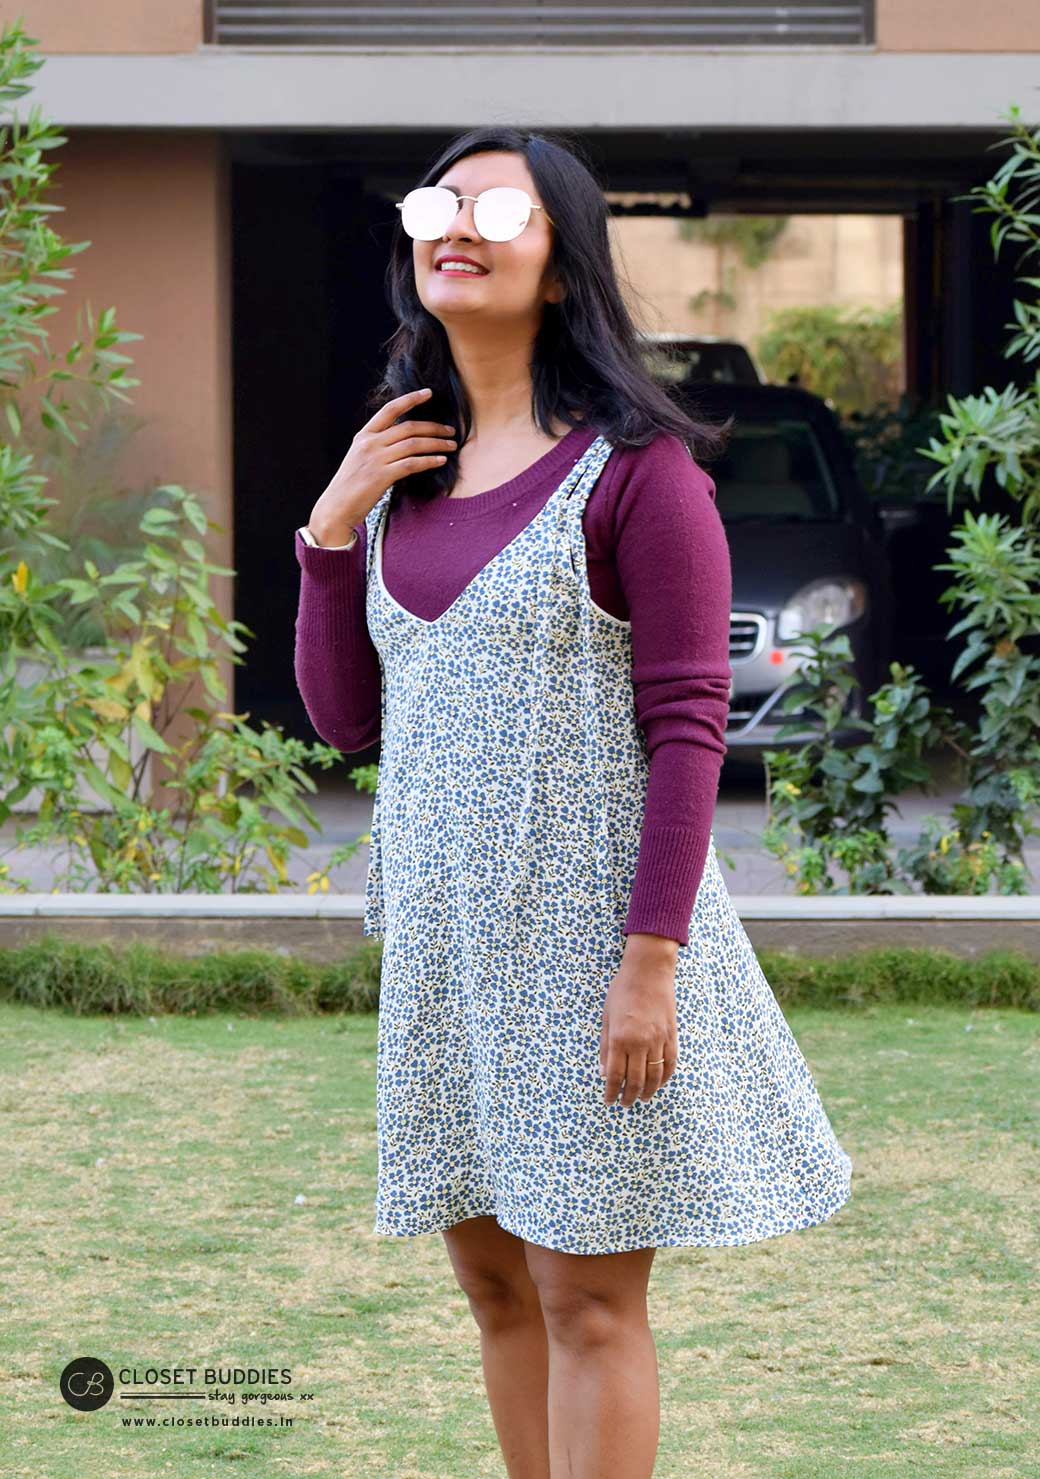 dress pinafore 7 - A Blogger's Rant